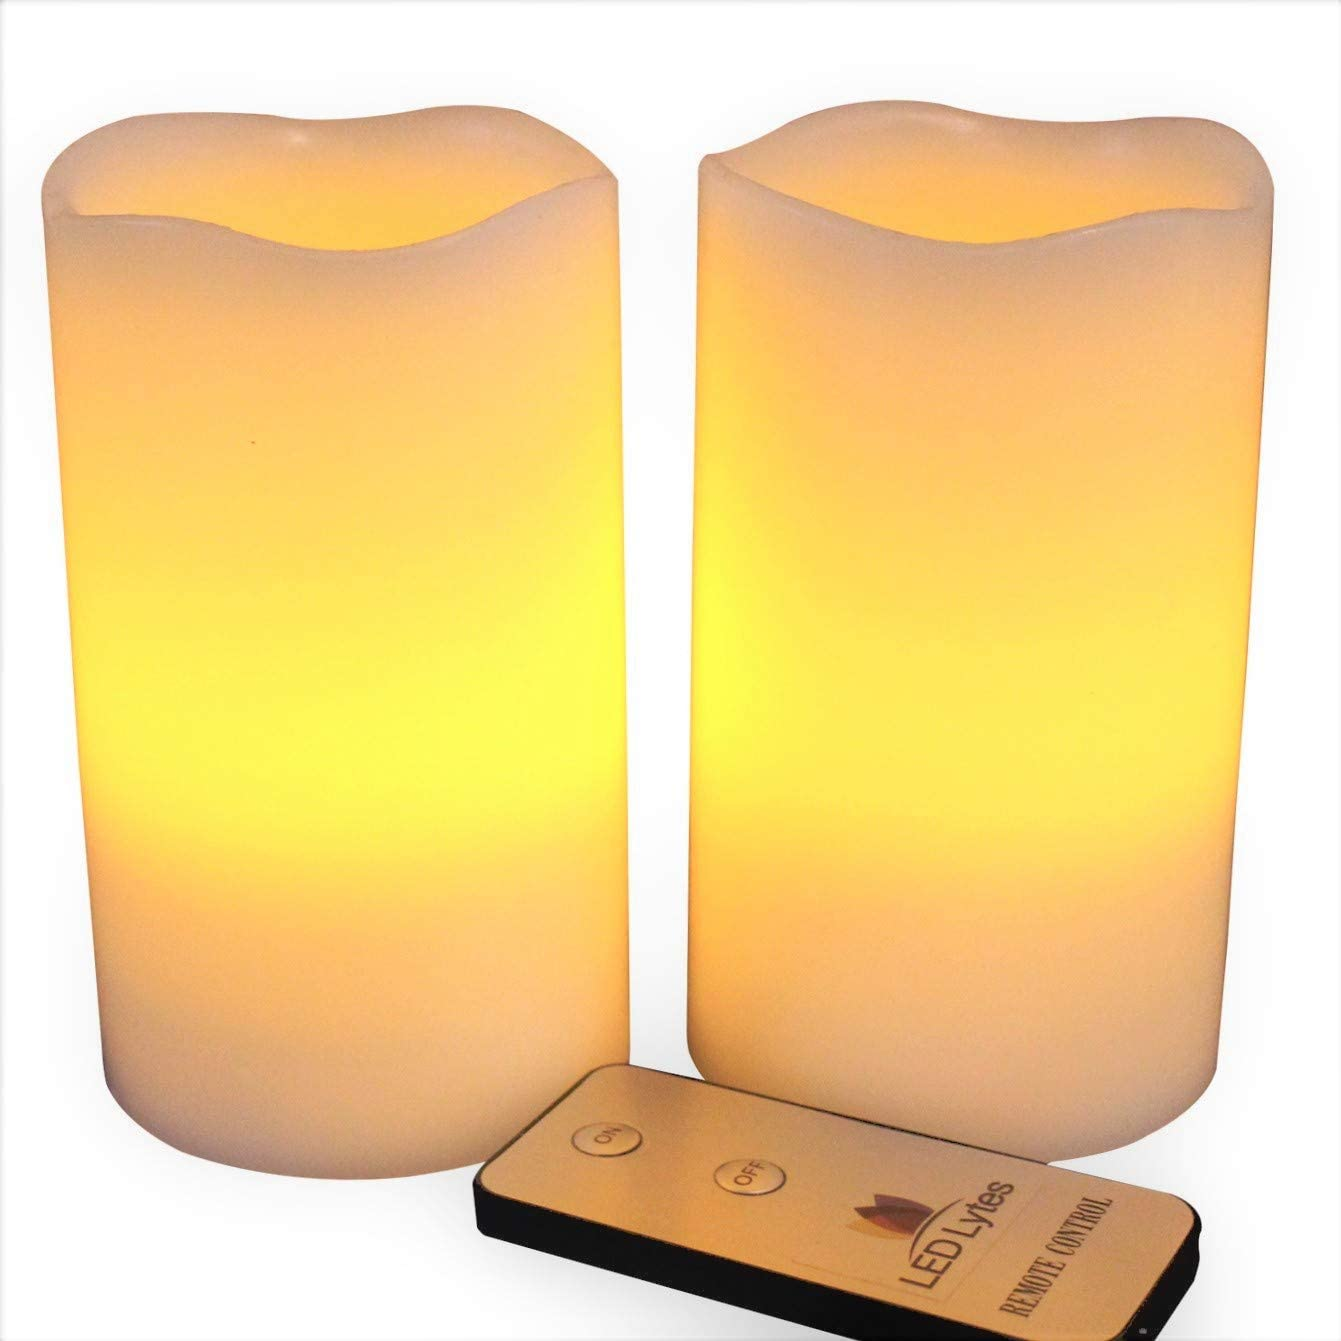 LED Lytes Flameless Candles, Battery Powered Candle Set, 2 Ivory Wax Amber Yellow Flickering Flame Pillars with Remote for Weddings, Parties and Gifts